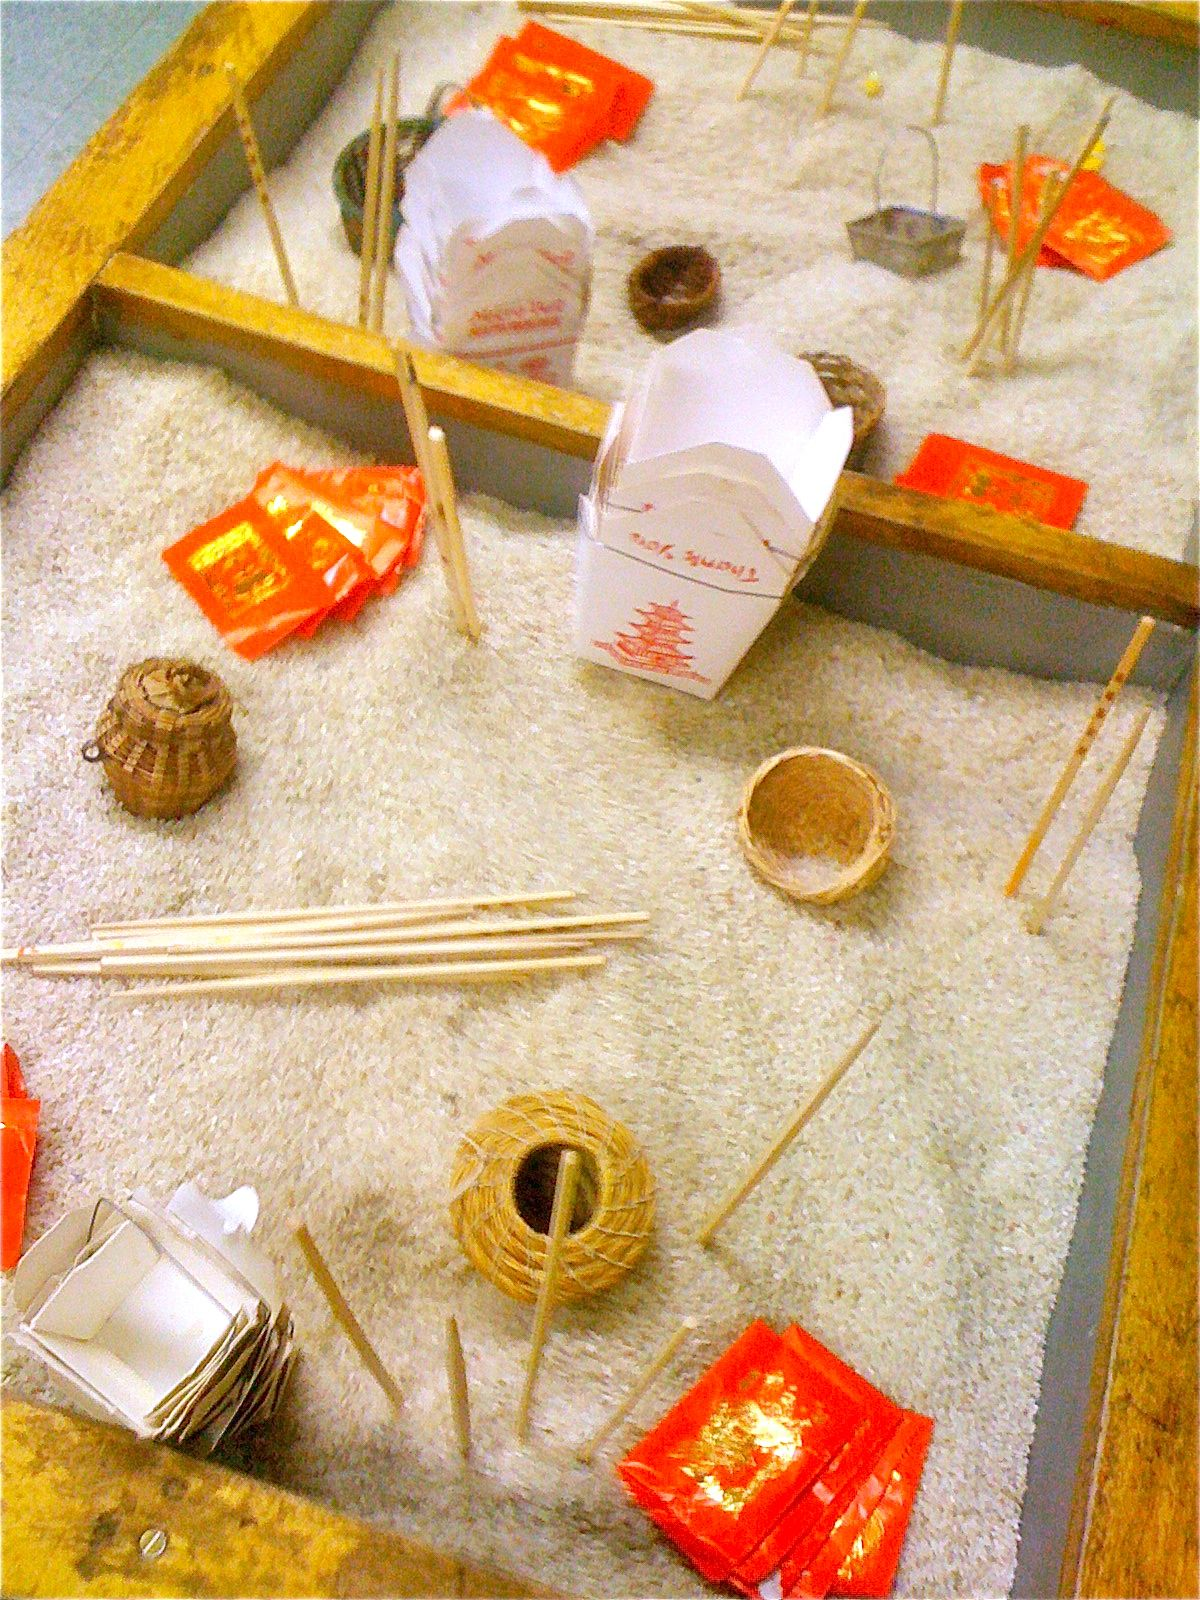 Chinese New Year sensory table rice, chopsticks, take out